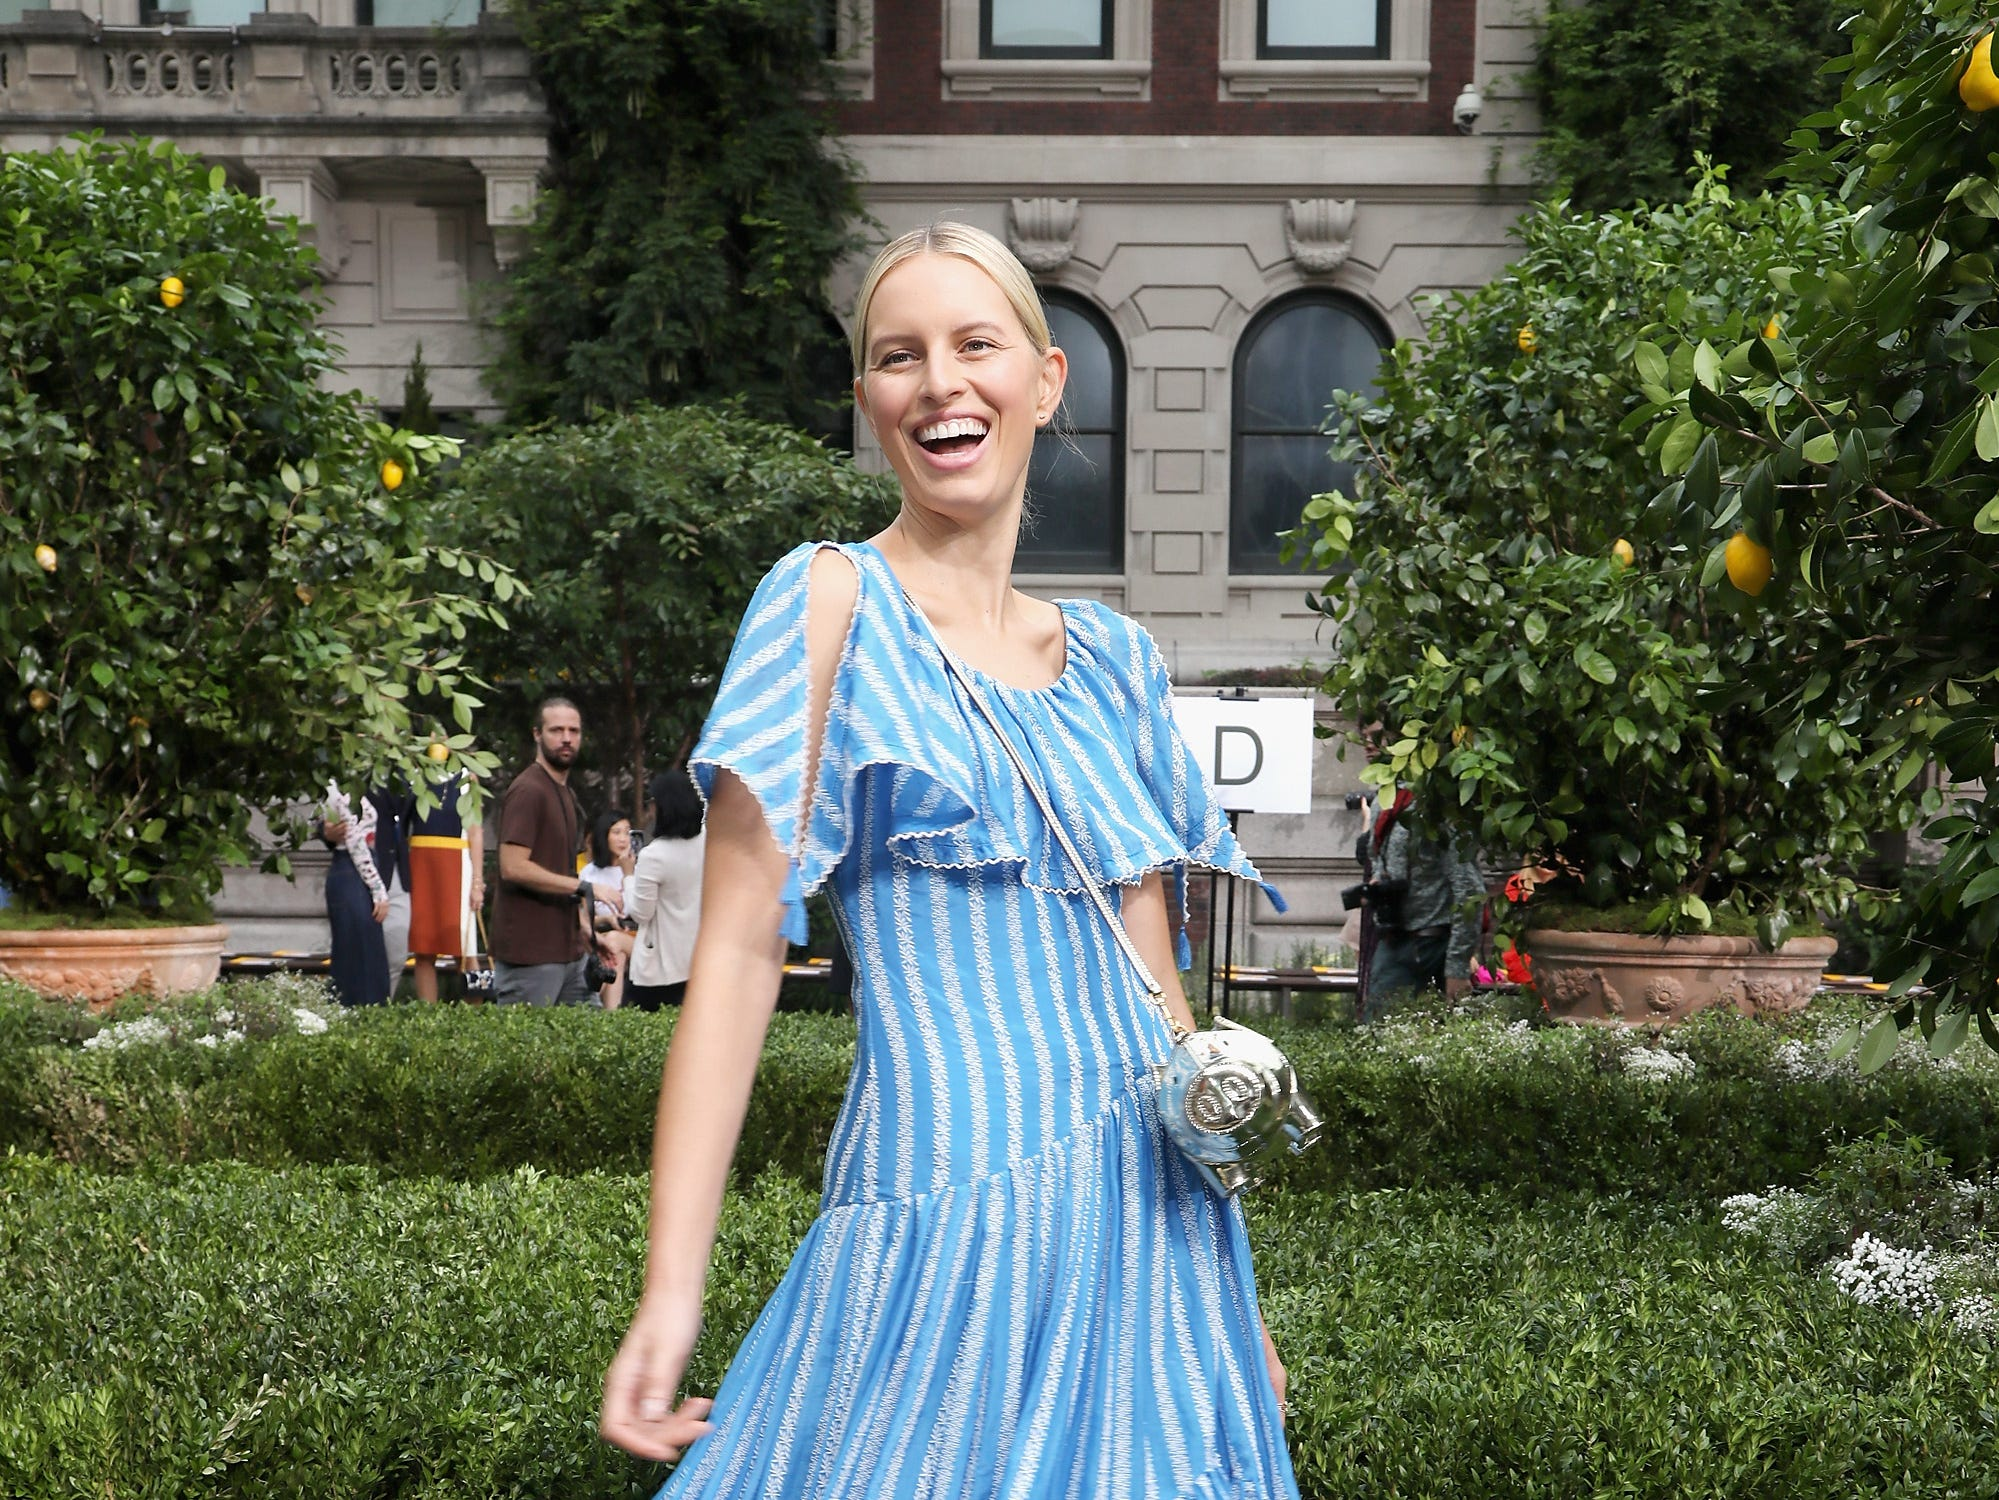 NEW YORK, NY - SEPTEMBER 07:  Model Karolina Kurkova attends the Tory Burch Spring Summer 2019 Fashion Show at Cooper Hewitt, Smithsonian Design Museum on September 7, 2018 in New York City.  (Photo by Anna Webber/Getty Images for Tory Burch) ORG XMIT: 775216252 ORIG FILE ID: 1028459724